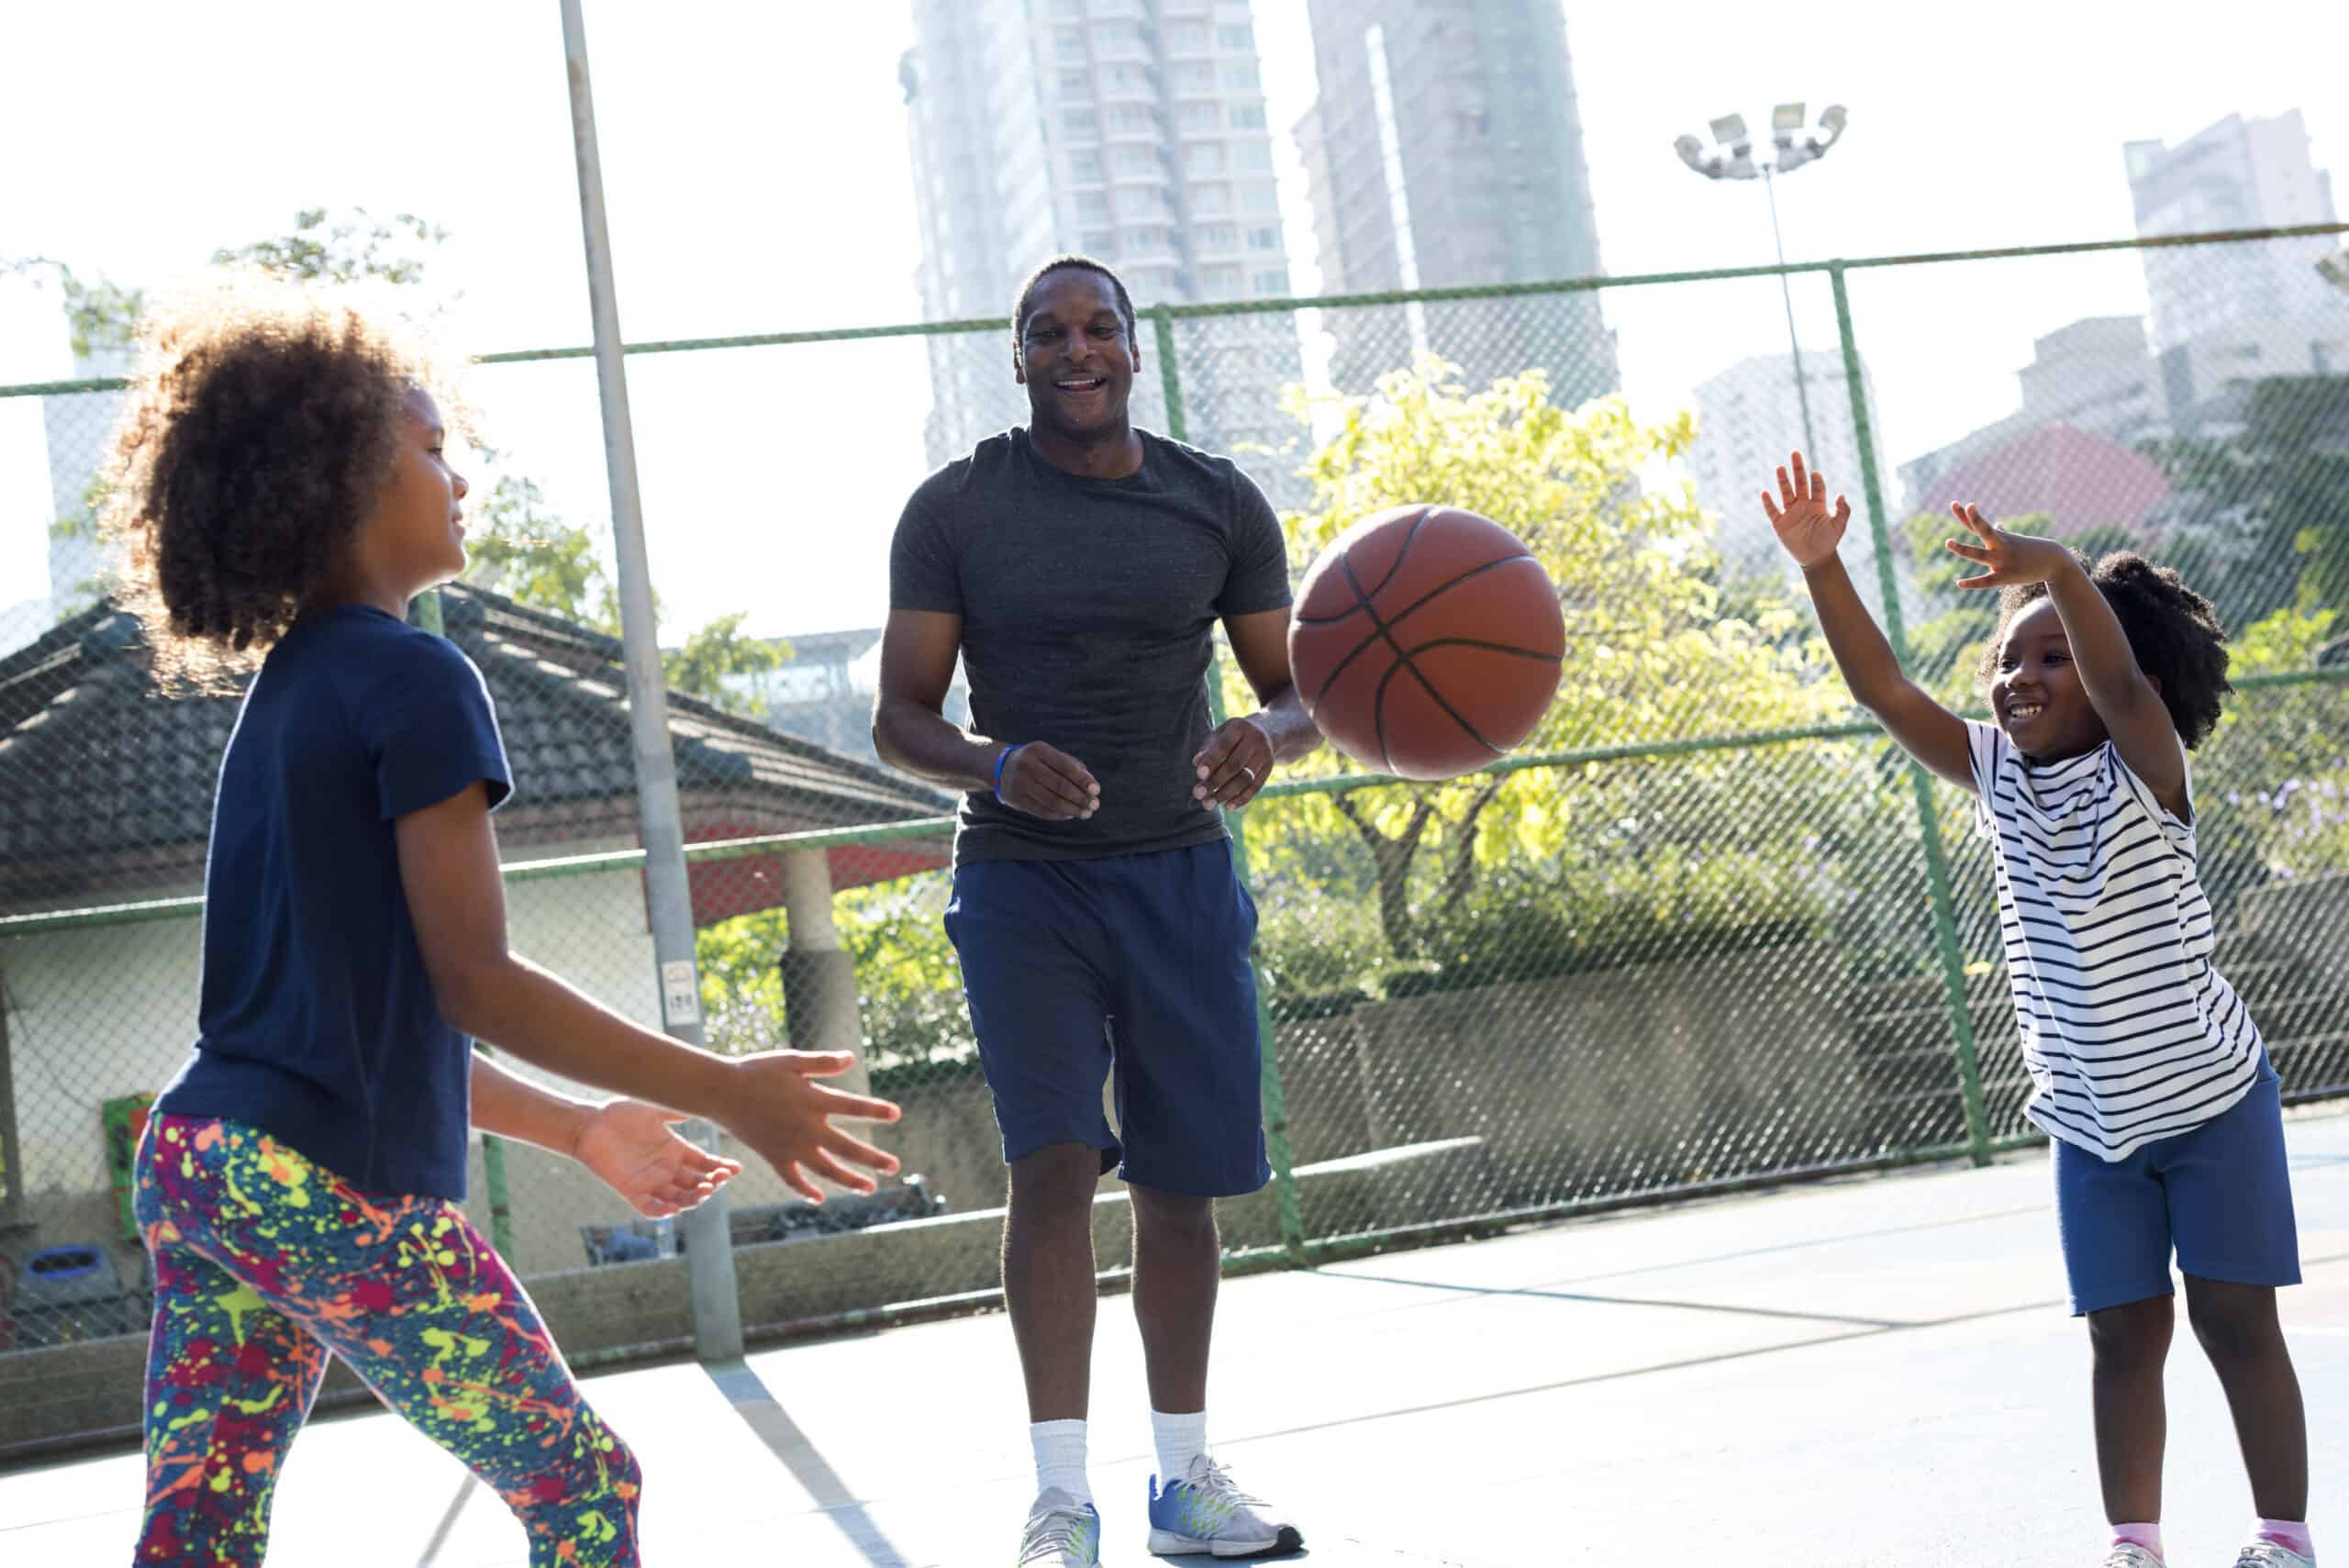 African father spending time playing basketball with his children